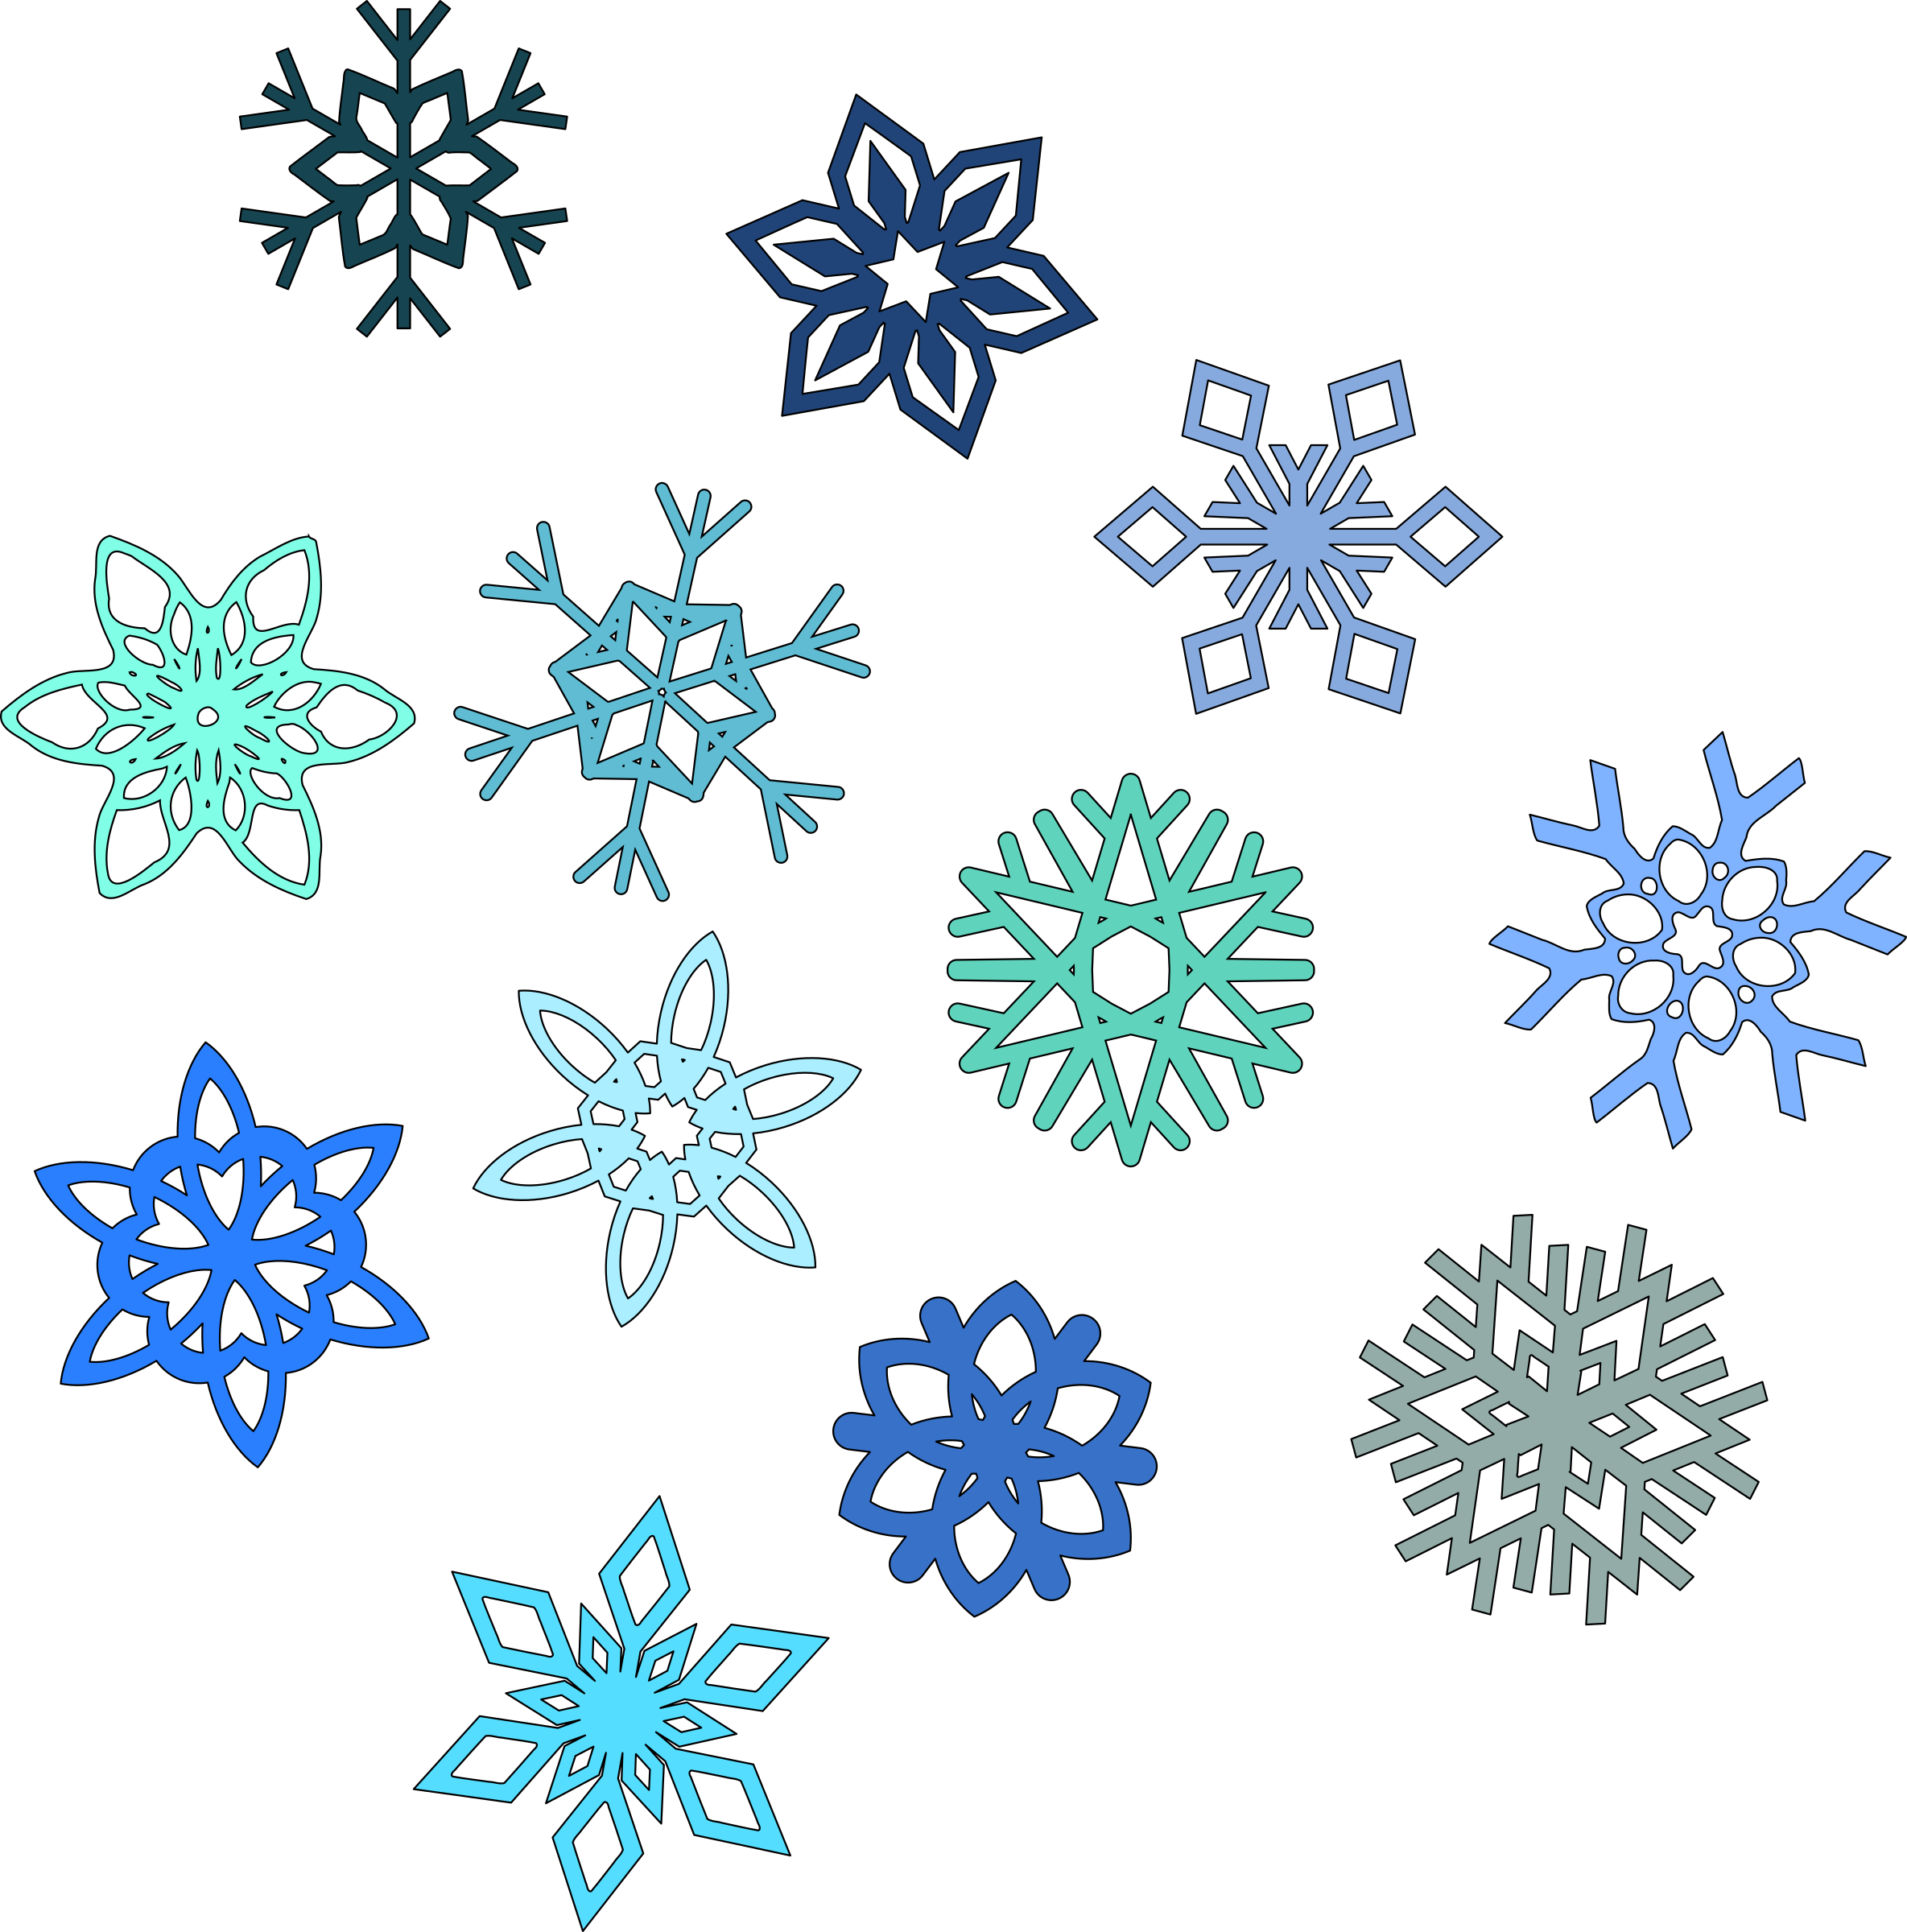 Clipart free snowflake banner freeuse Keeping a Snow Journal | Pinterest | Scrapbooking banner freeuse